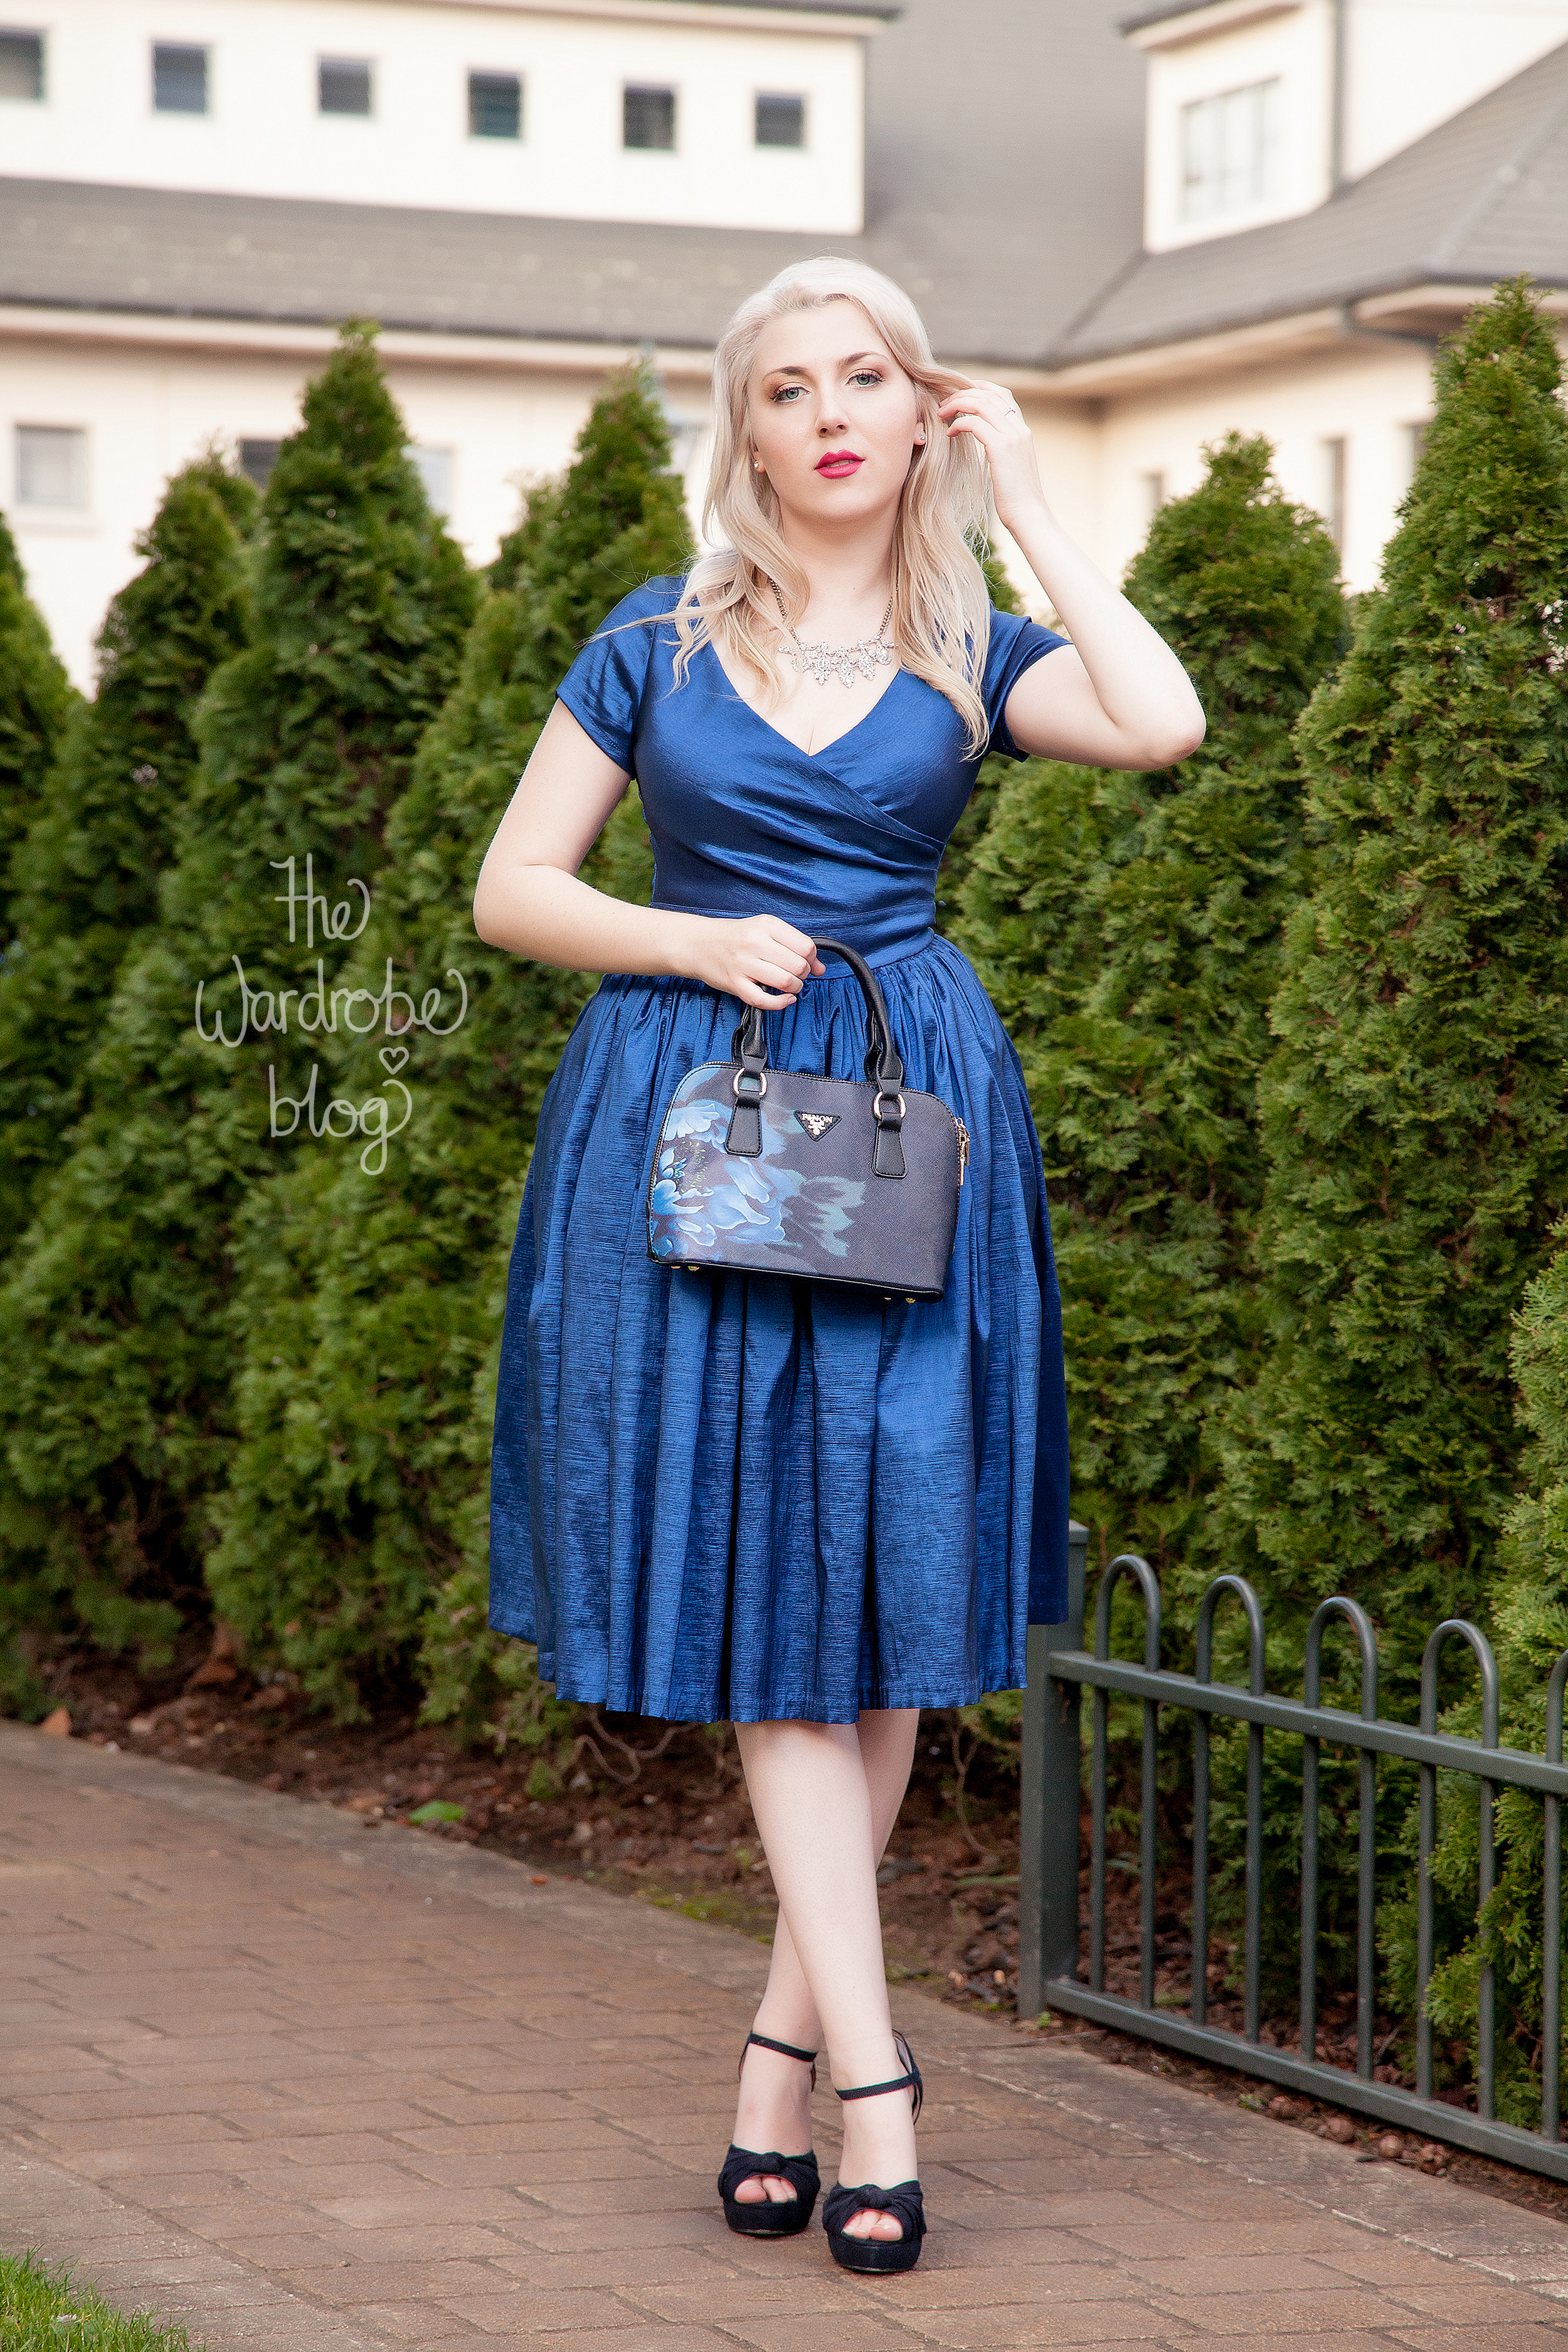 Ava Swing Dress in Dark Blue available at the Rita Sue Boutique, by Pinup Girl Clothing.Finon Milano Handbag with blue illustration from the Rita Sue Boutique. Necklace from Veronica B. Shoes from Novo Shoes.